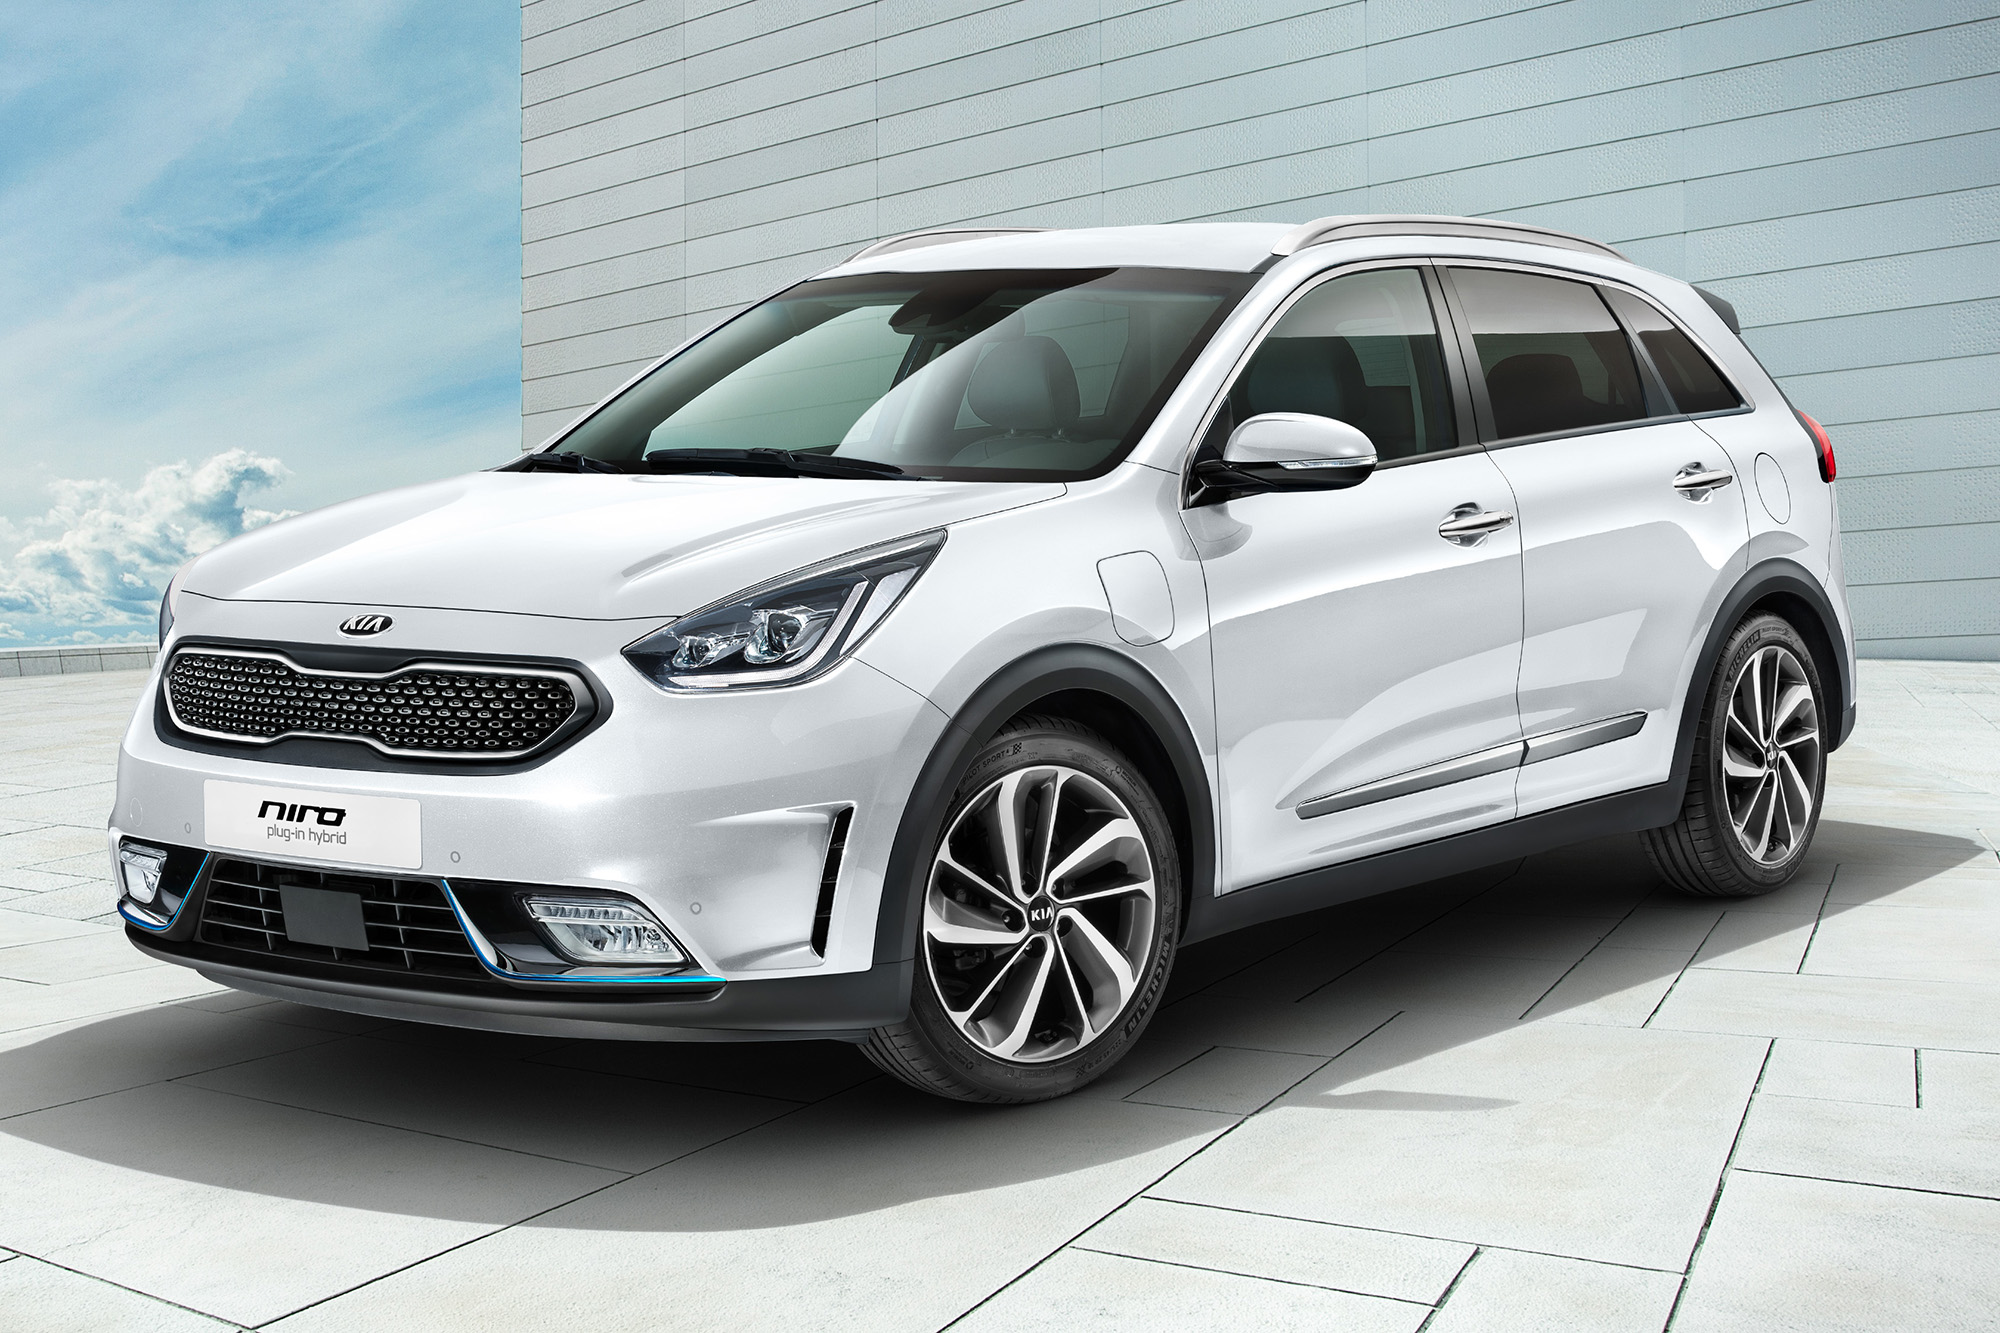 kia niro plug in hybrid il crossover ibrido alternativa. Black Bedroom Furniture Sets. Home Design Ideas